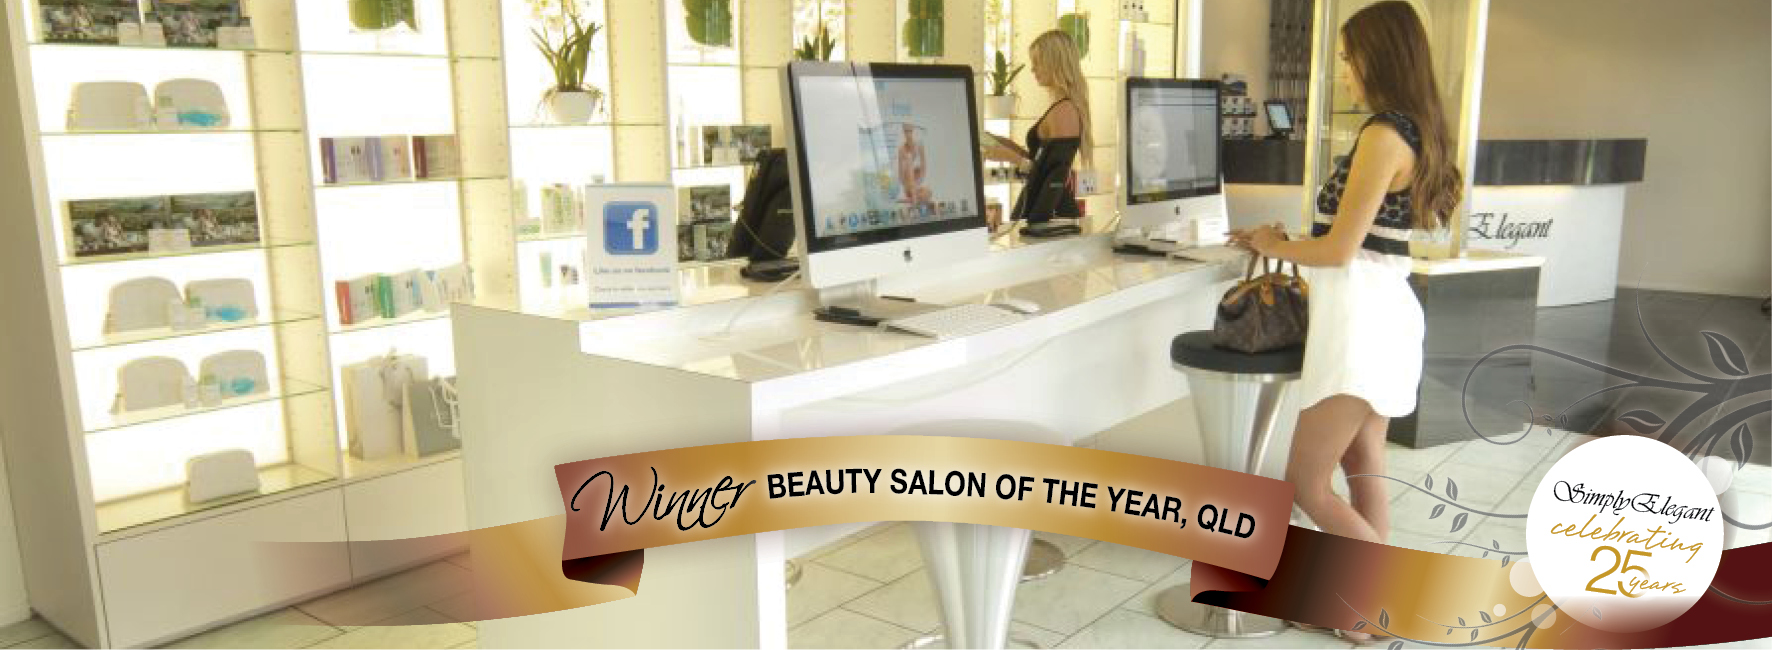 Simply-Elegant-Poster-WEBSITE-Salon-of-the-Year-Extra-images-2017-v2b4